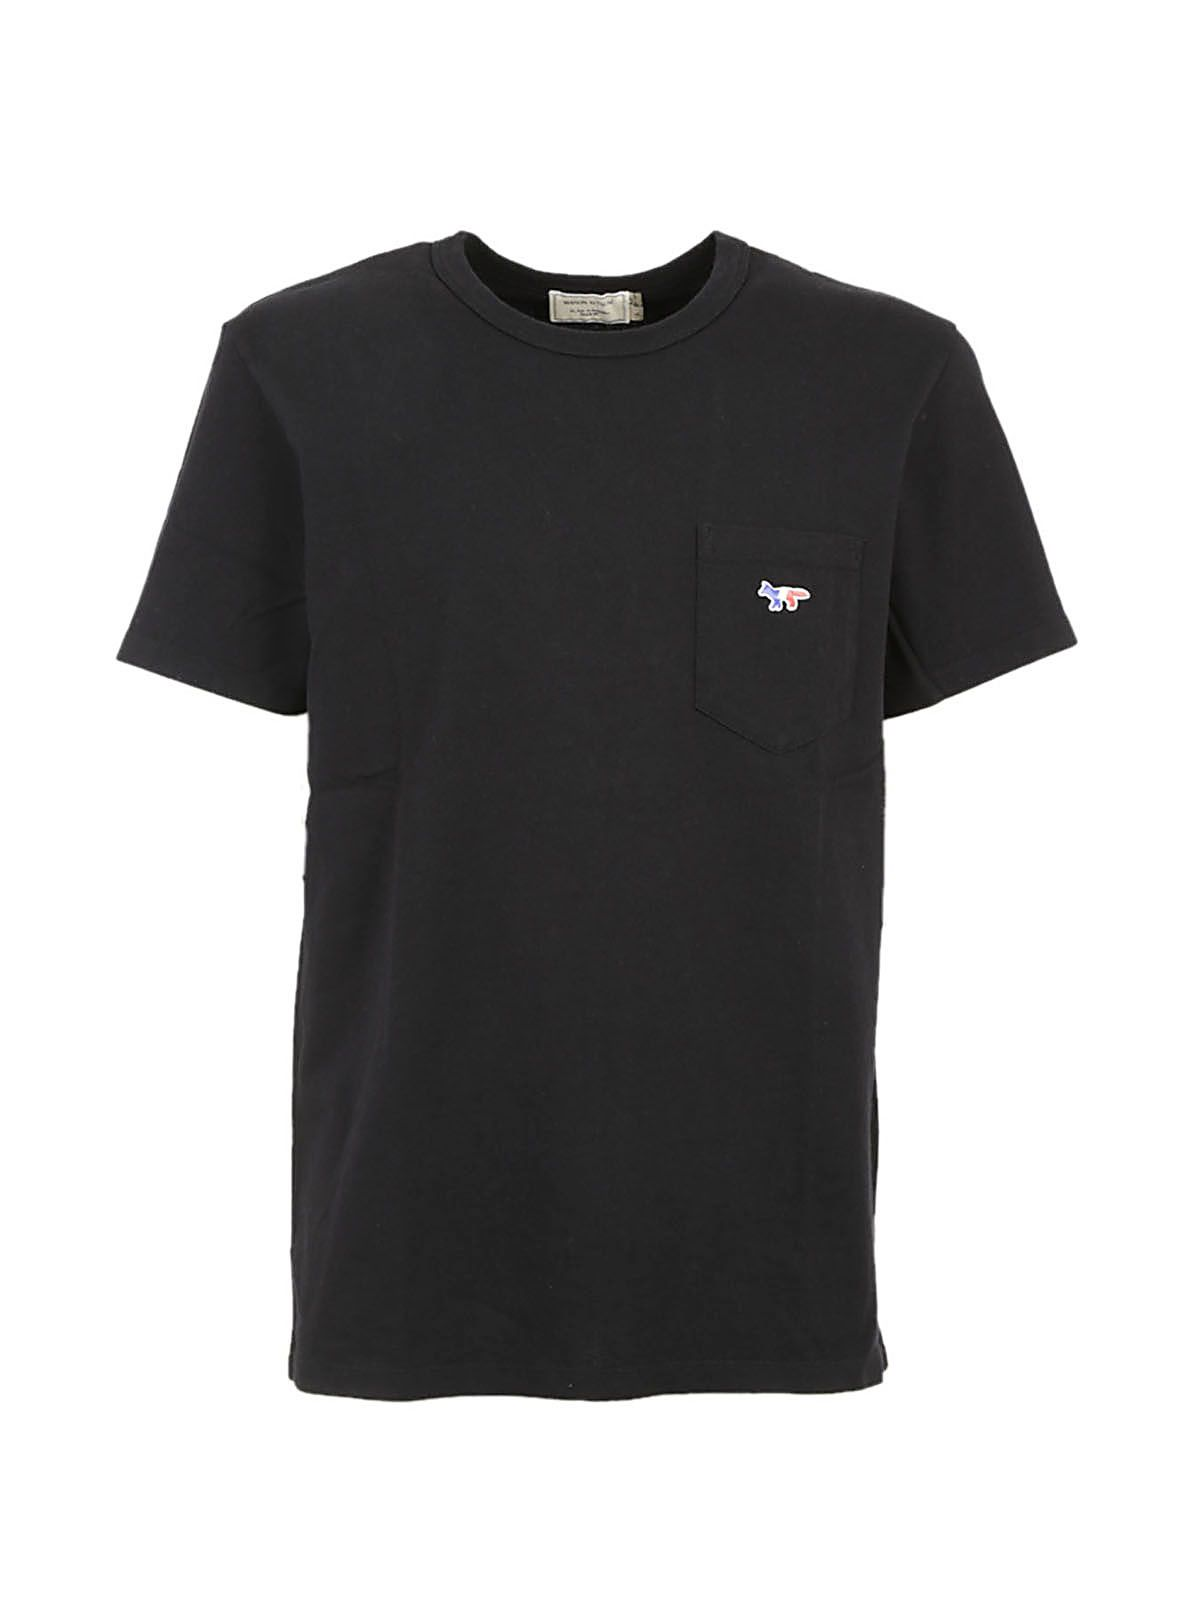 KITSUNÉ Chest Pocket T-Shirt in Black